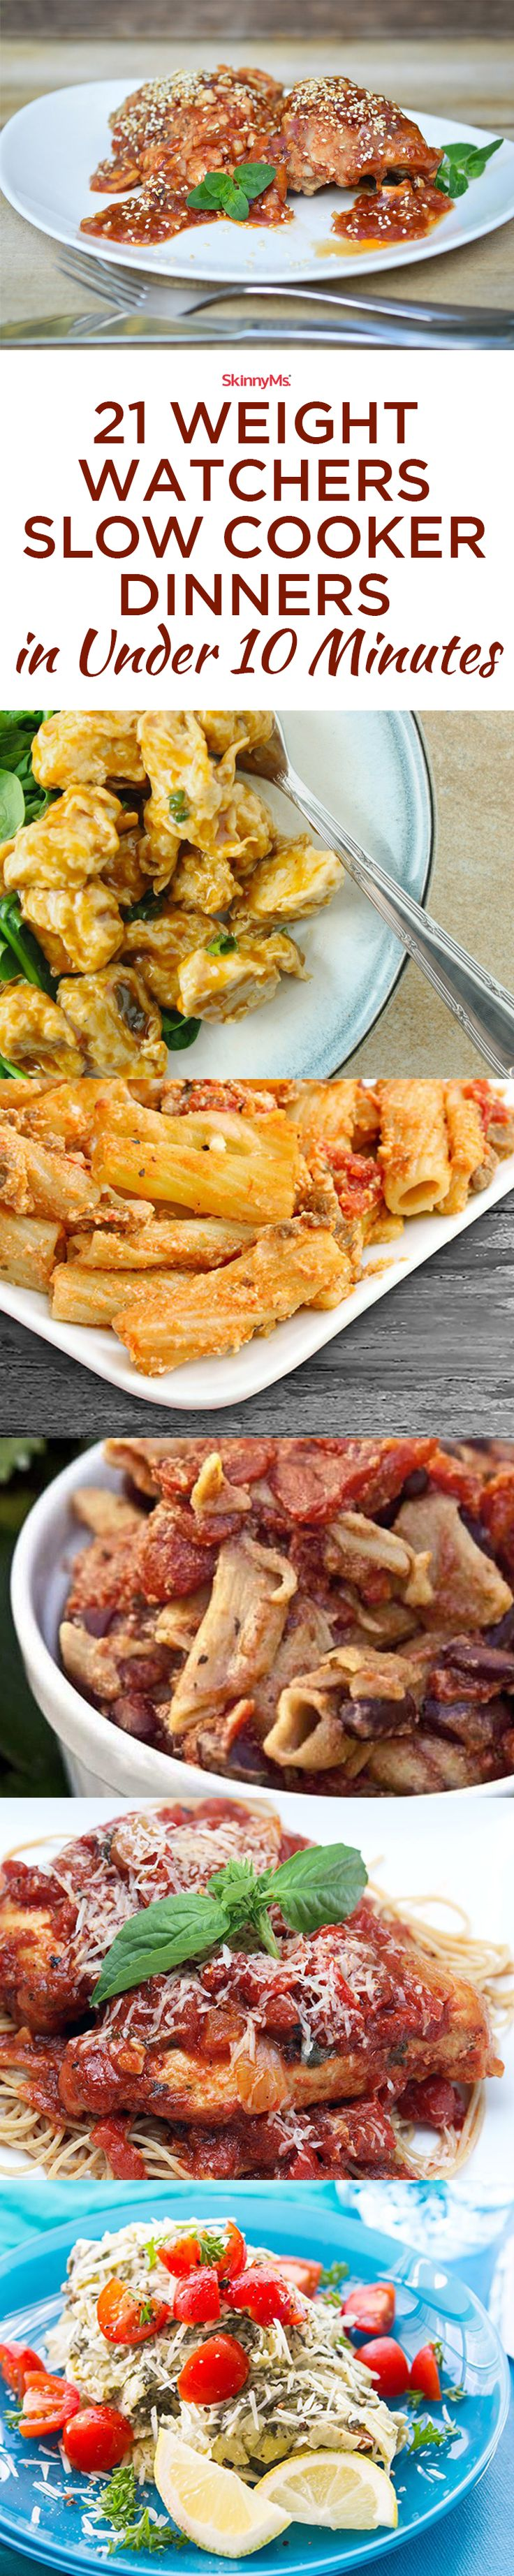 Quick and easy Weight Watchers dinners without breaking your point budget!